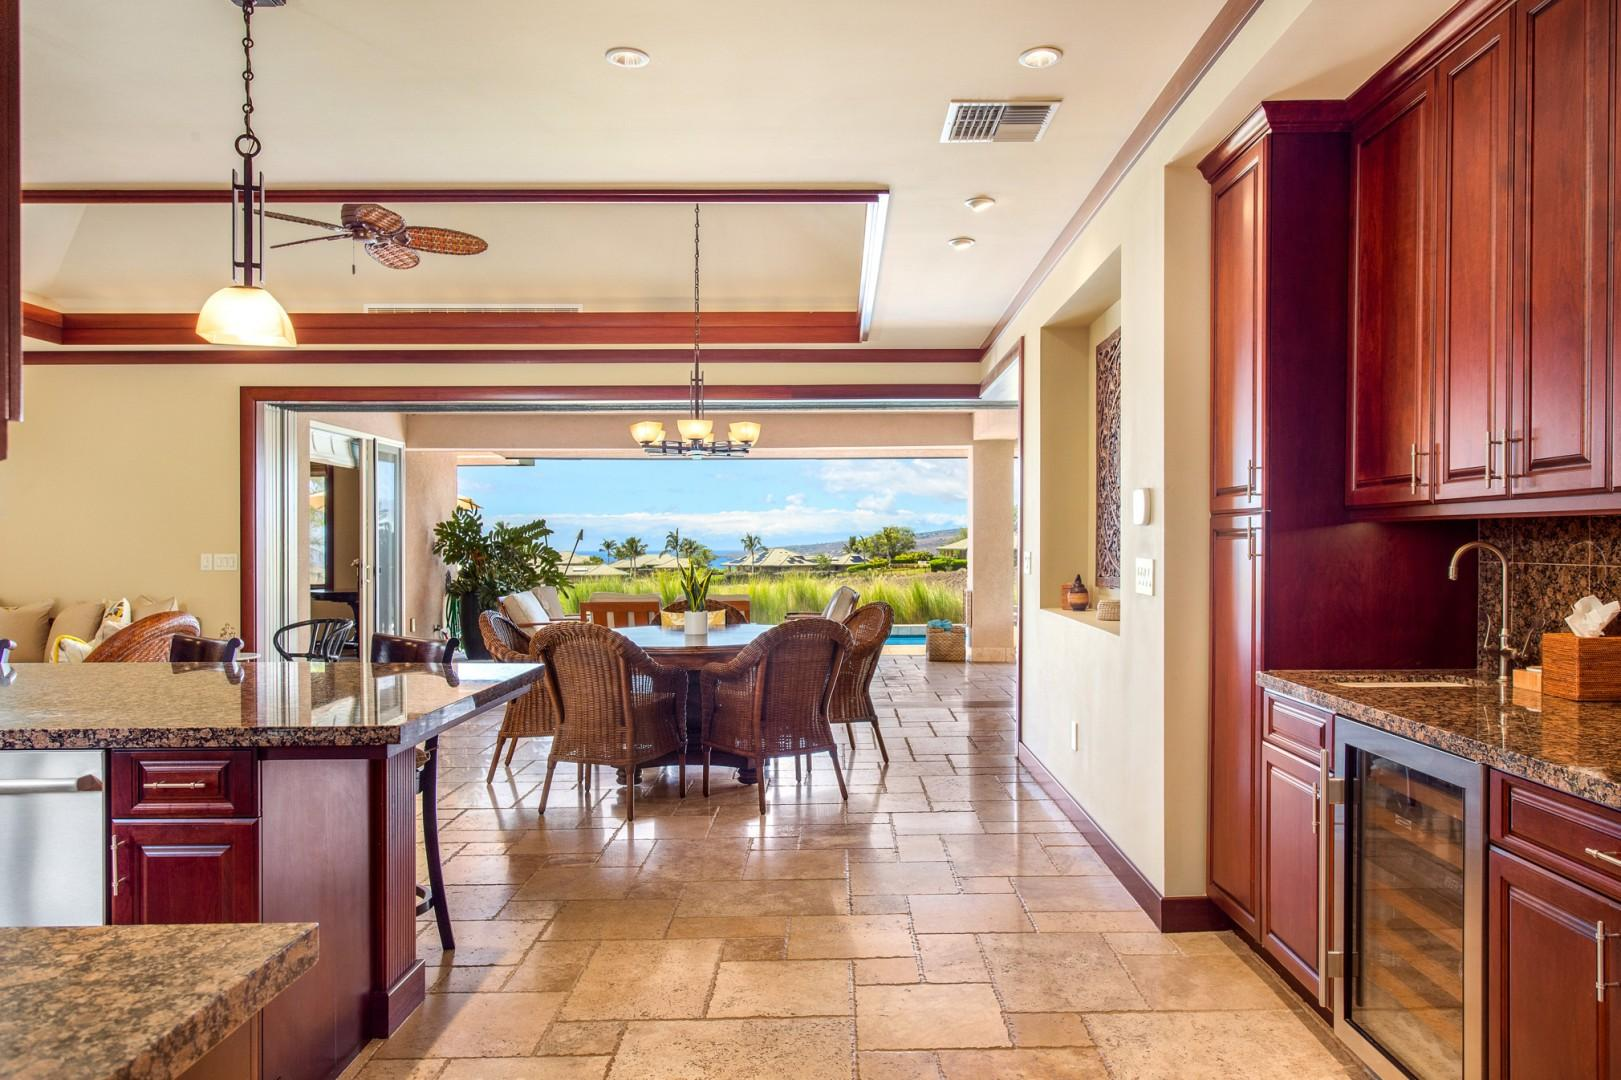 The spacious and gleaming gourmet kitchen is outfitted with granite countertops, gleaming appliances and a sizable island.